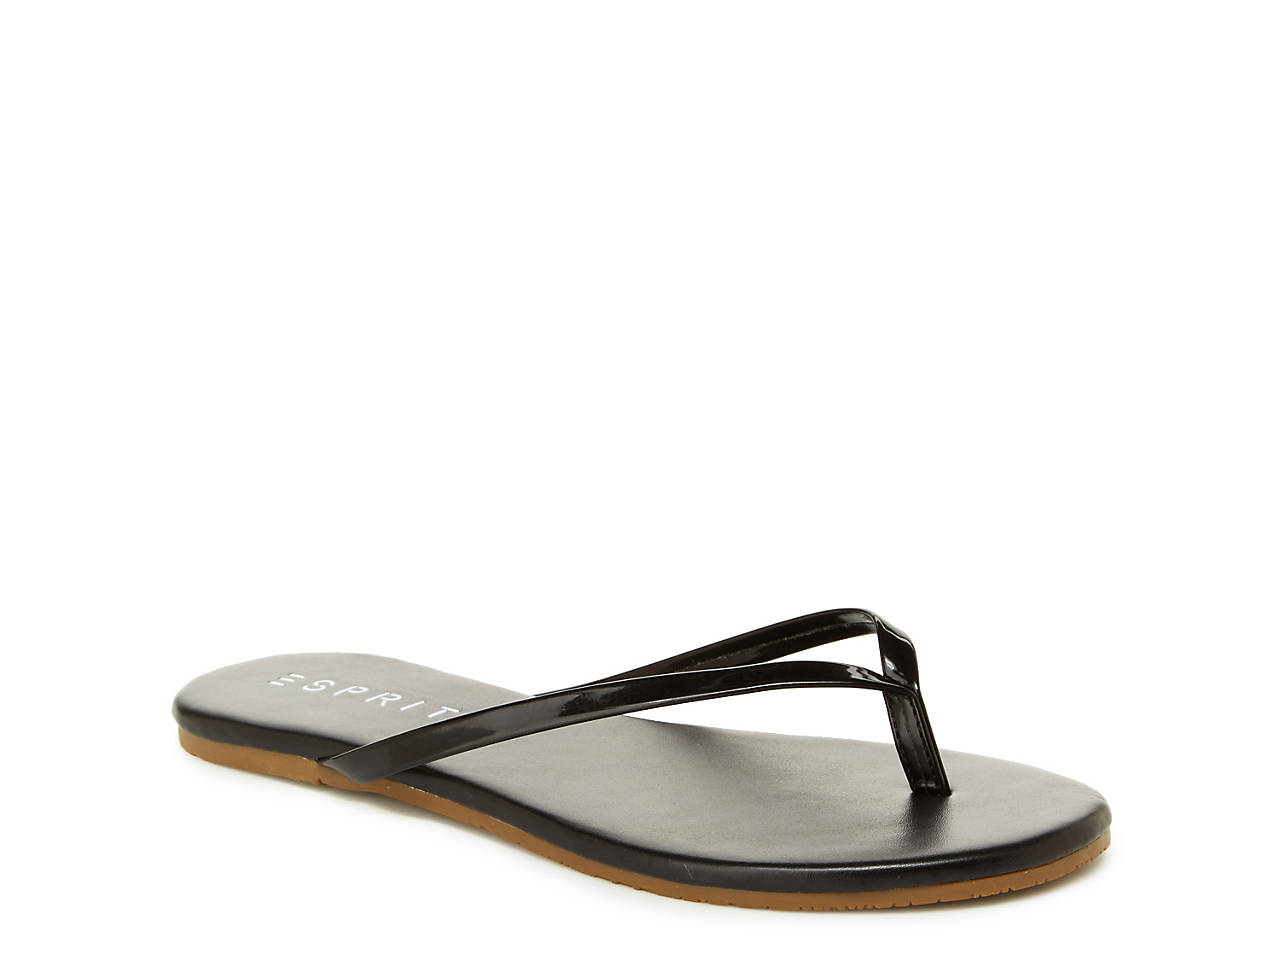 brand new b7eb1 68cd4 Party Flip Flop